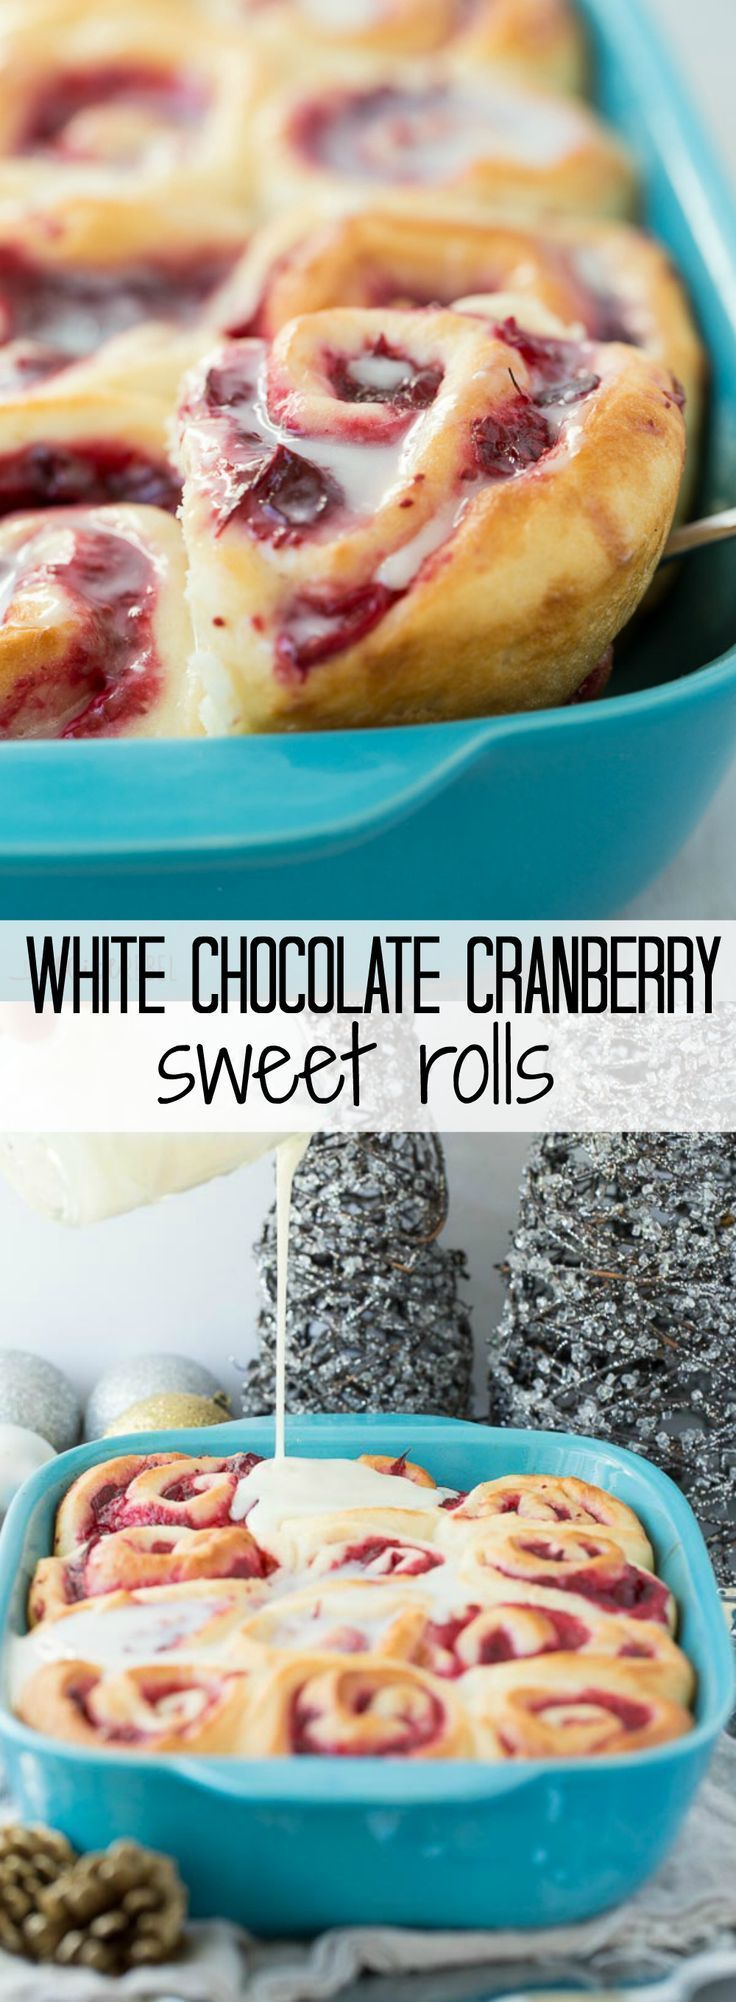 White Chocolate Cranberry Sweet Rolls! Soft, homemade bun dough filled with easy homemade cranberry filling (or sub store bought), topped with a white chocolate glaze -- perfect for Christmas brunch or a make ahead weekend breakfast!